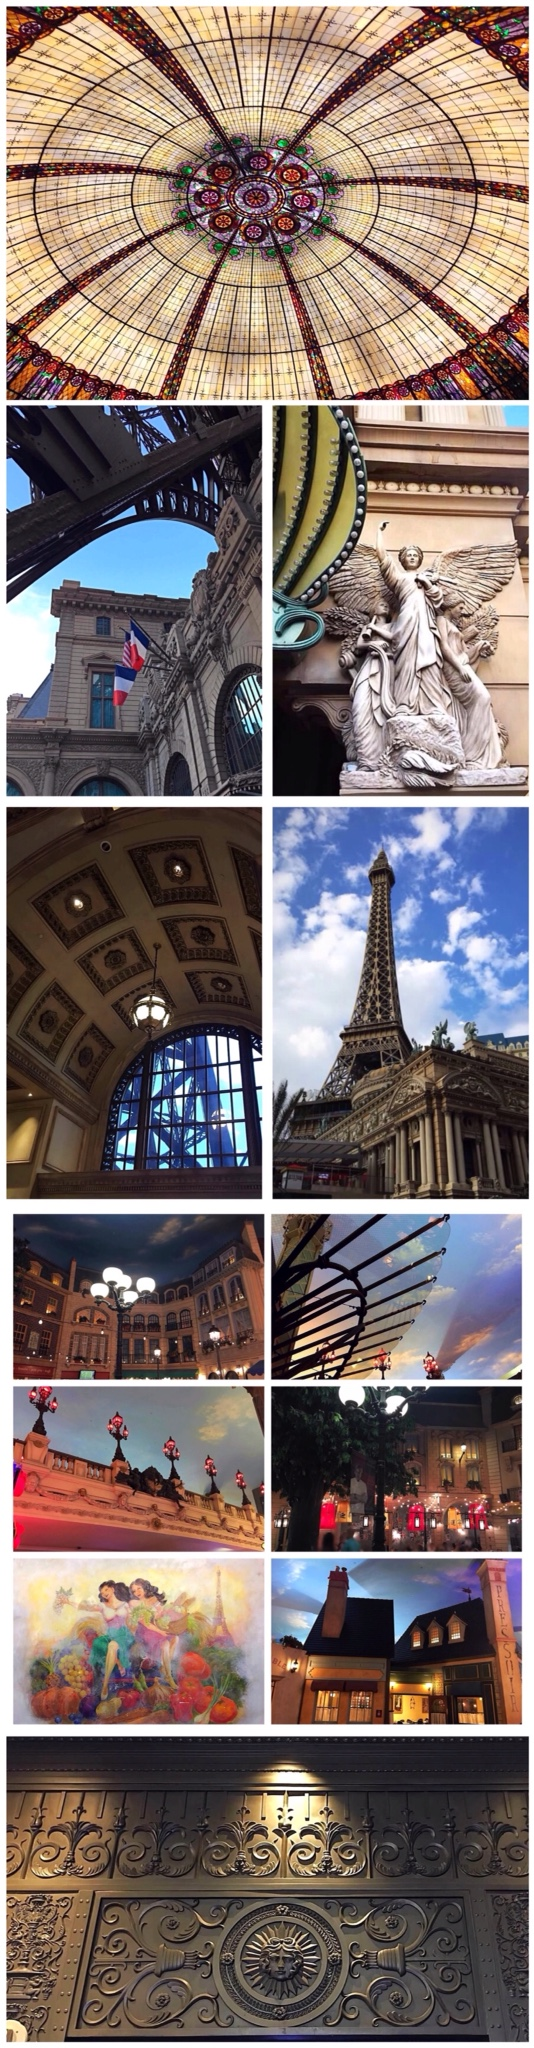 Paris Las Vegas photo montage